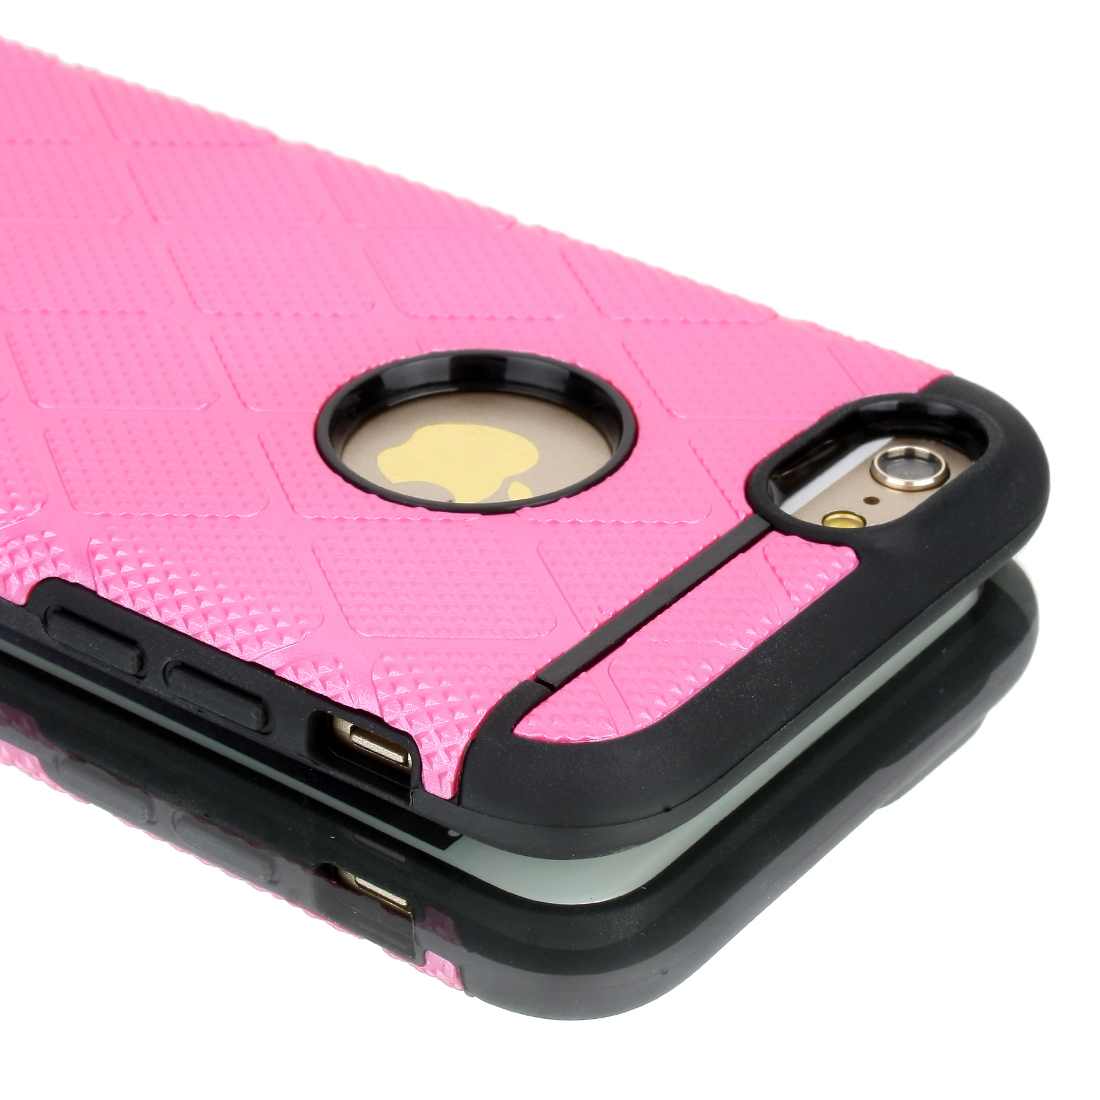 Shockproof Rugged Hybrid Rubber Hard Cover Case for Apple iPhone 6 Fuchsia